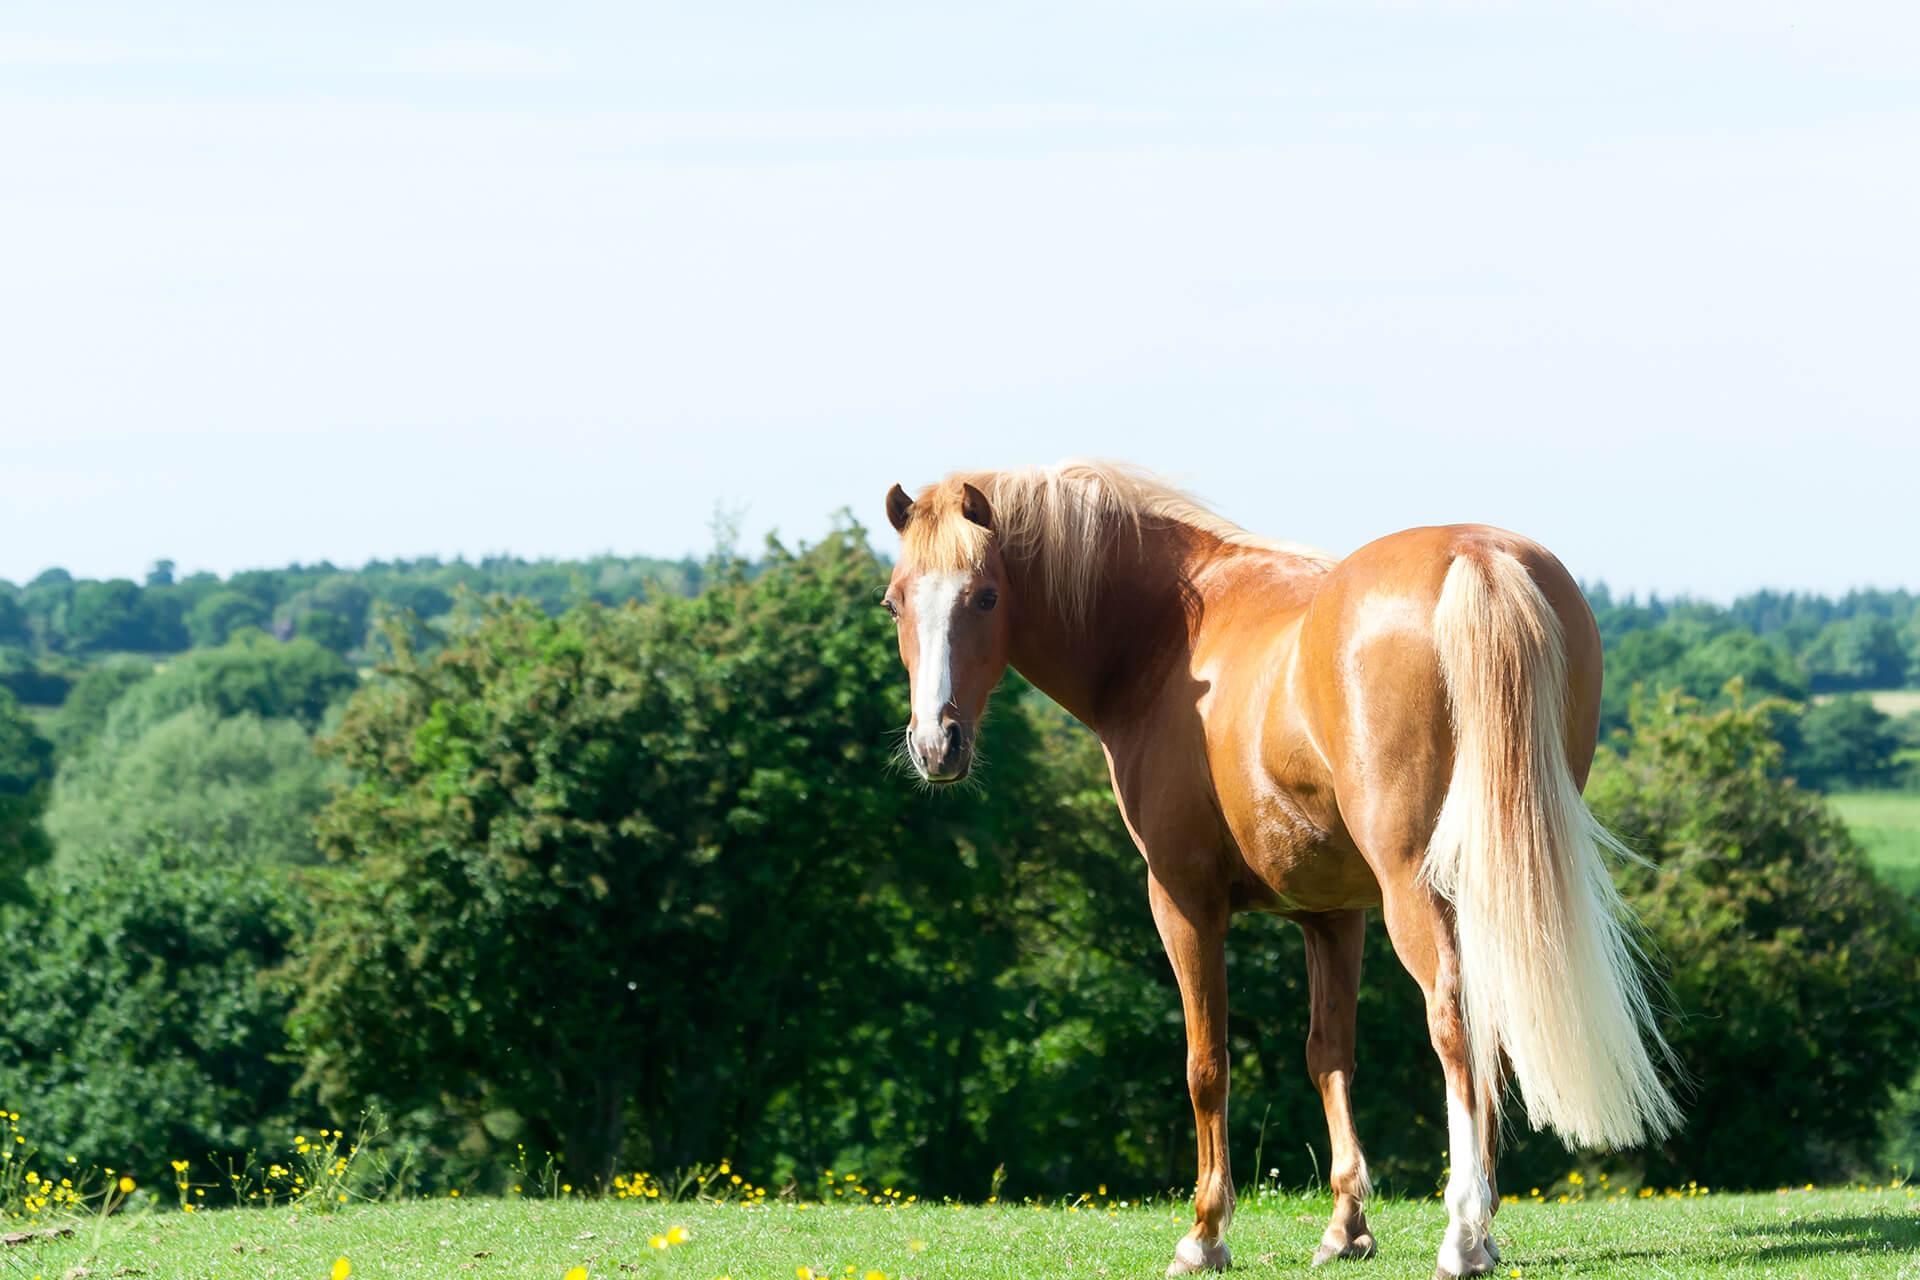 palomino horse standing in a field